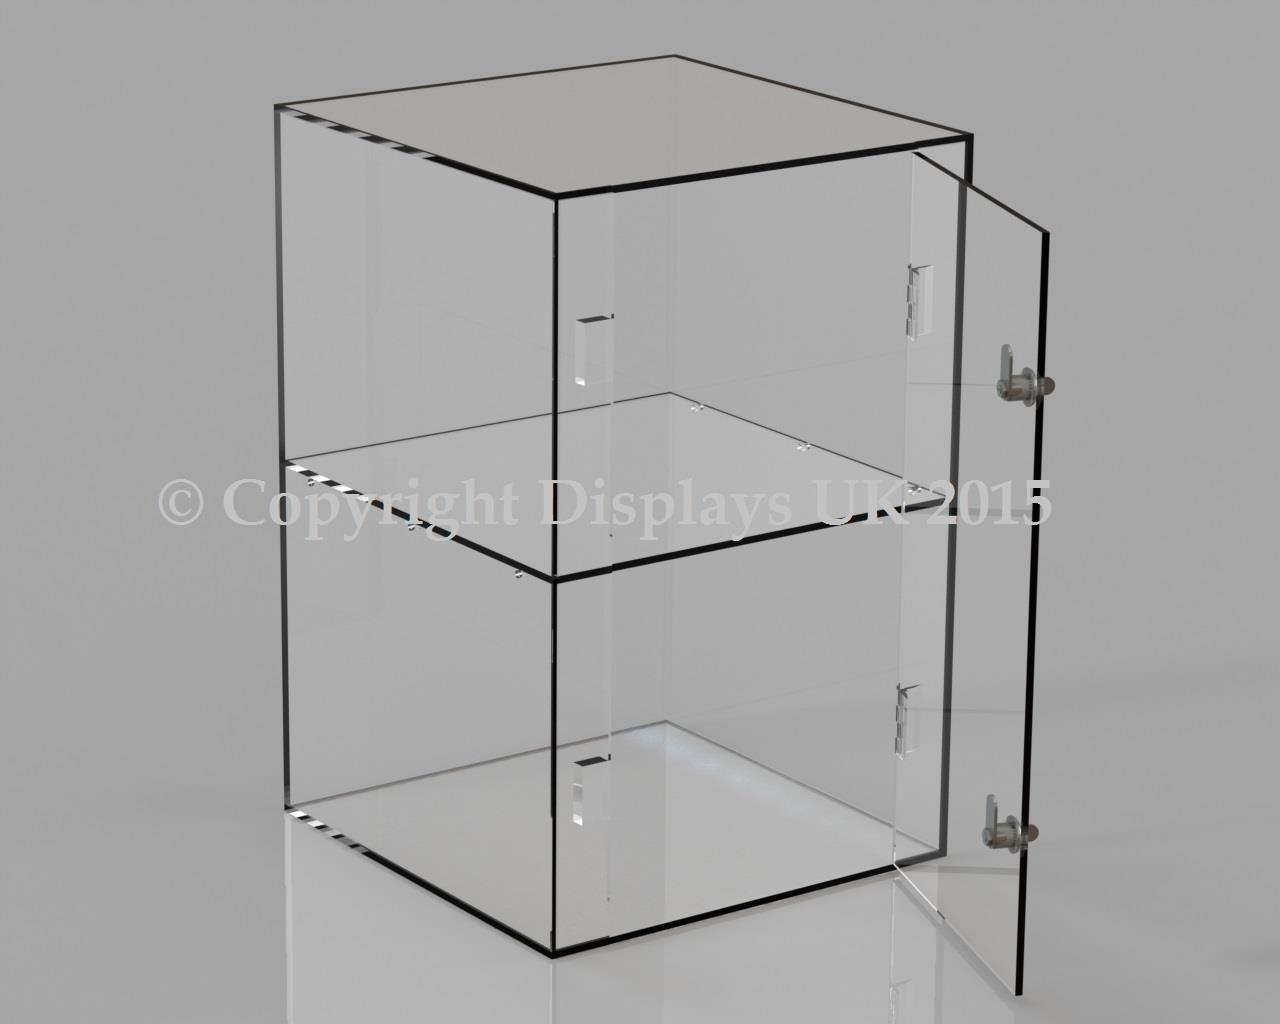 Acrylic Display Case - 1 Shelf - Lockable Door